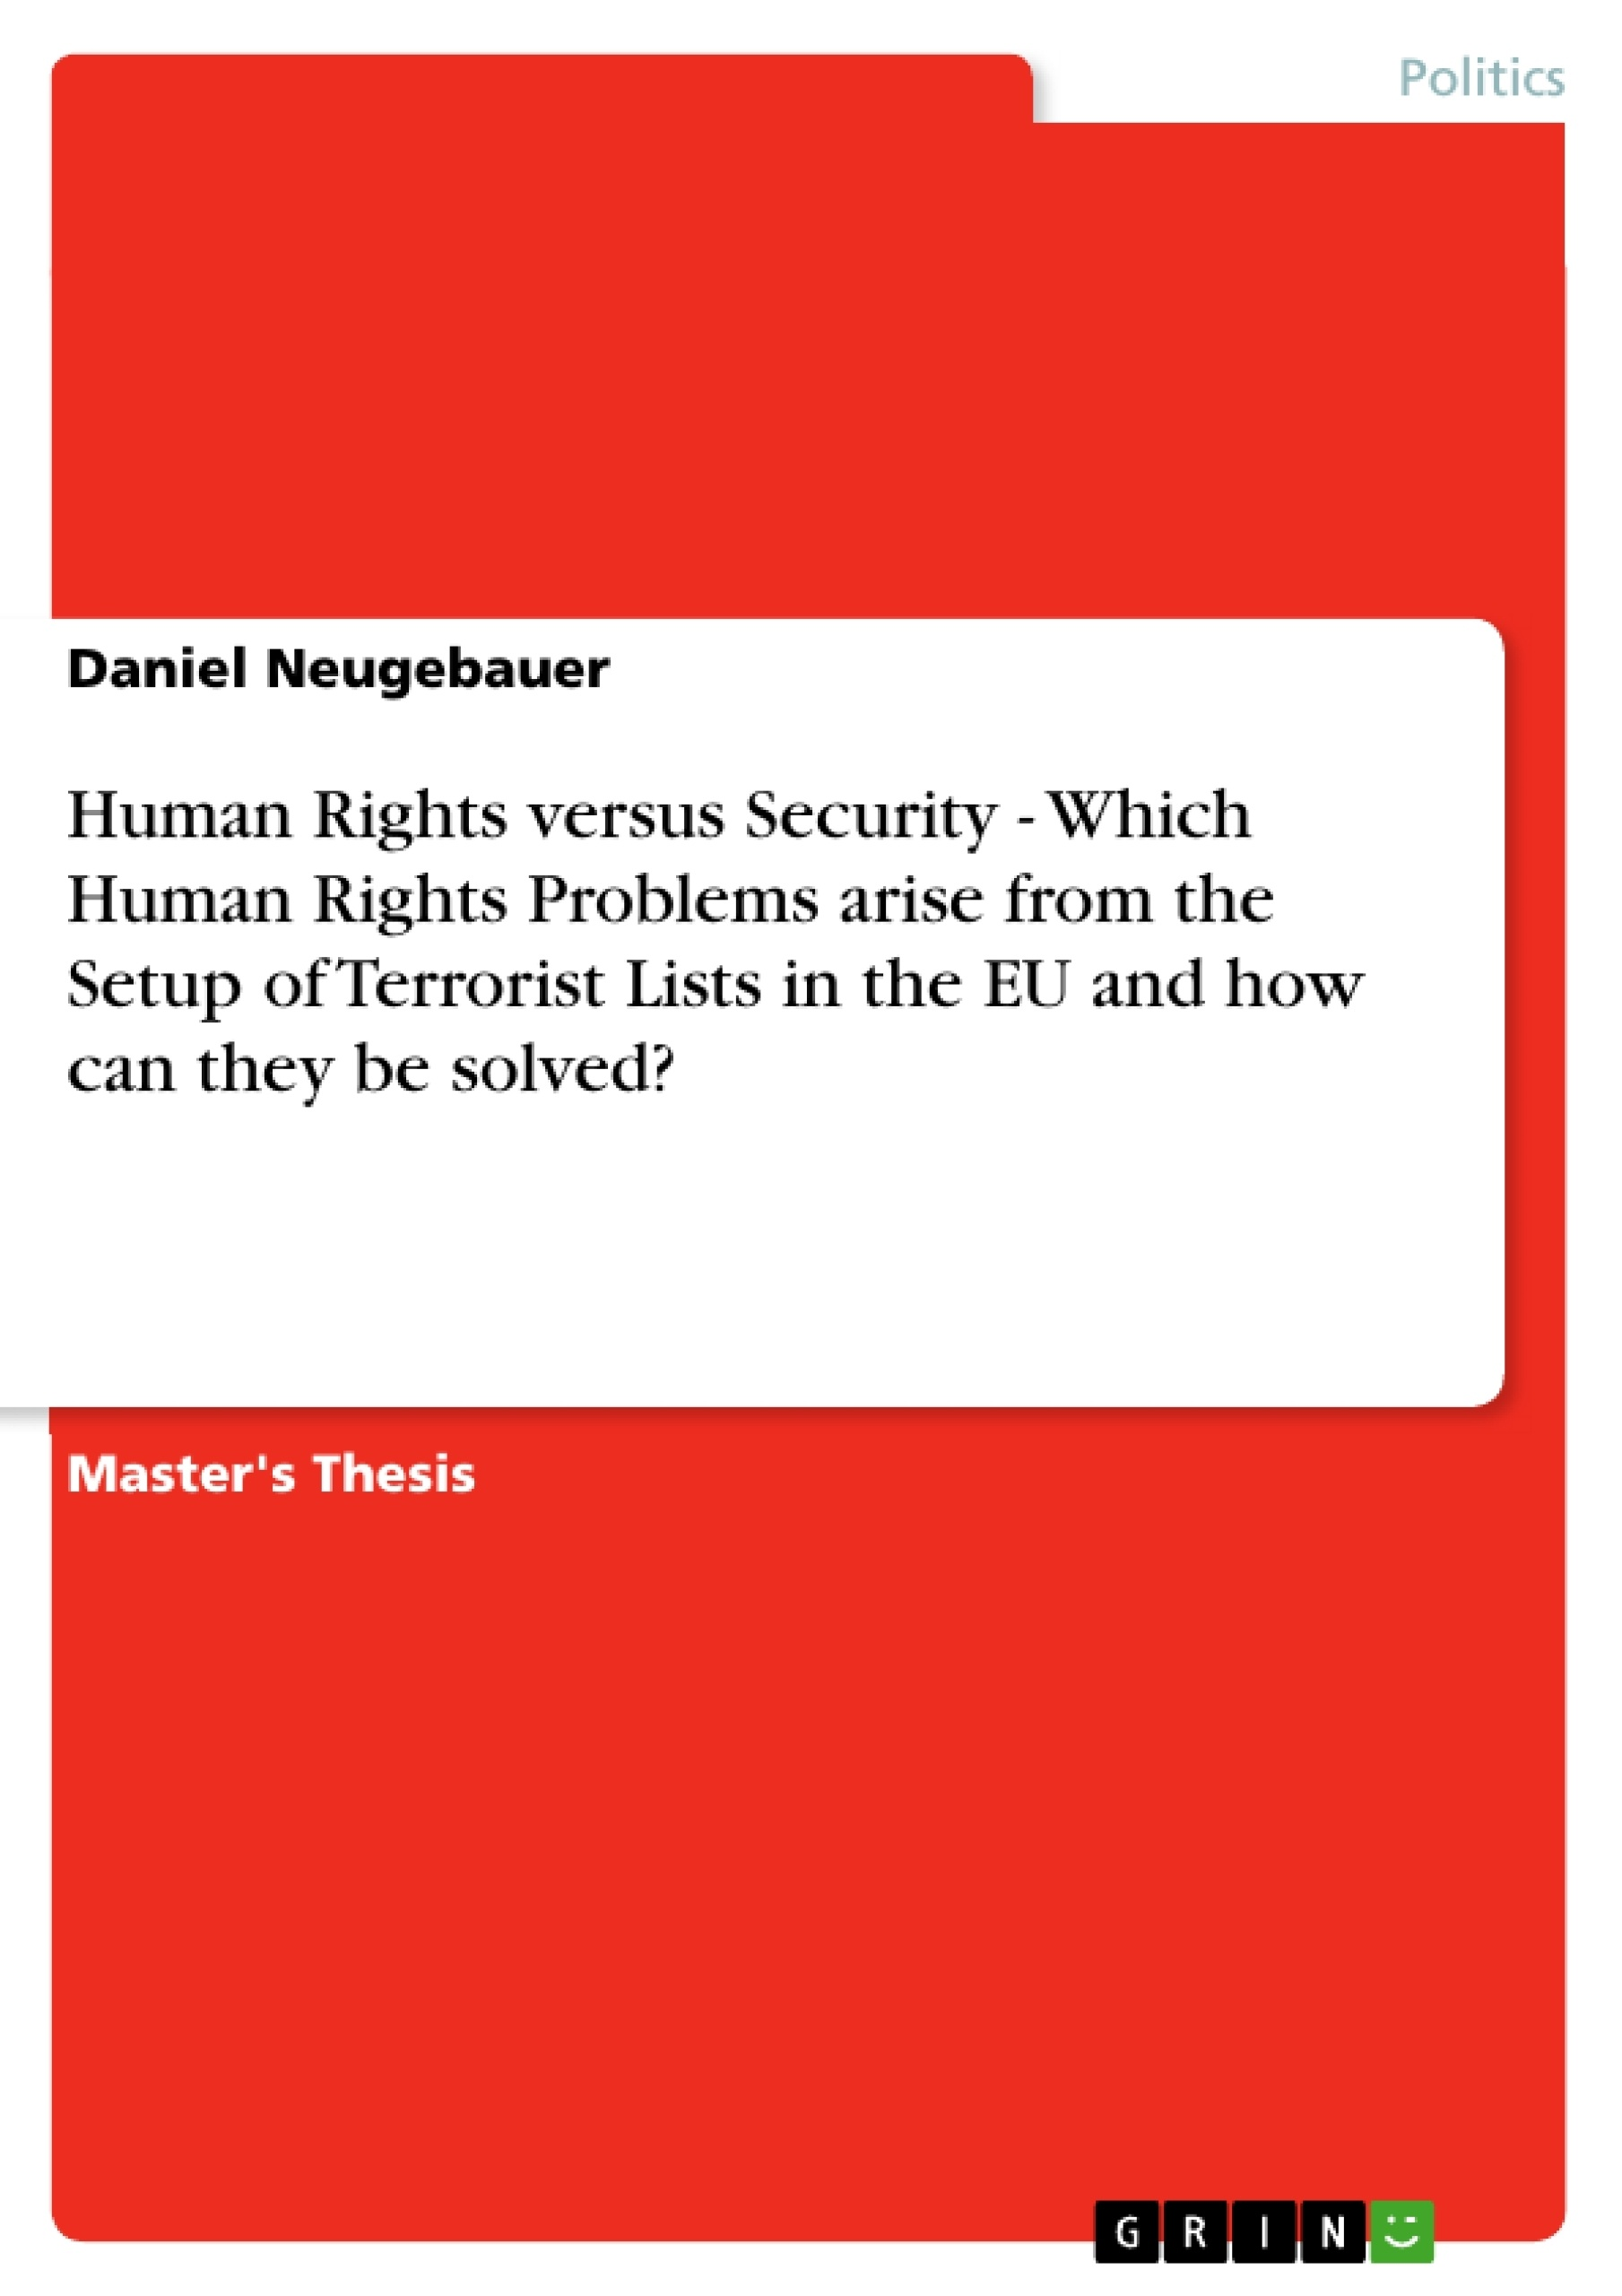 Title: Human Rights versus Security  -  Which Human Rights Problems arise from the Setup of Terrorist Lists in the EU and how can they be solved?